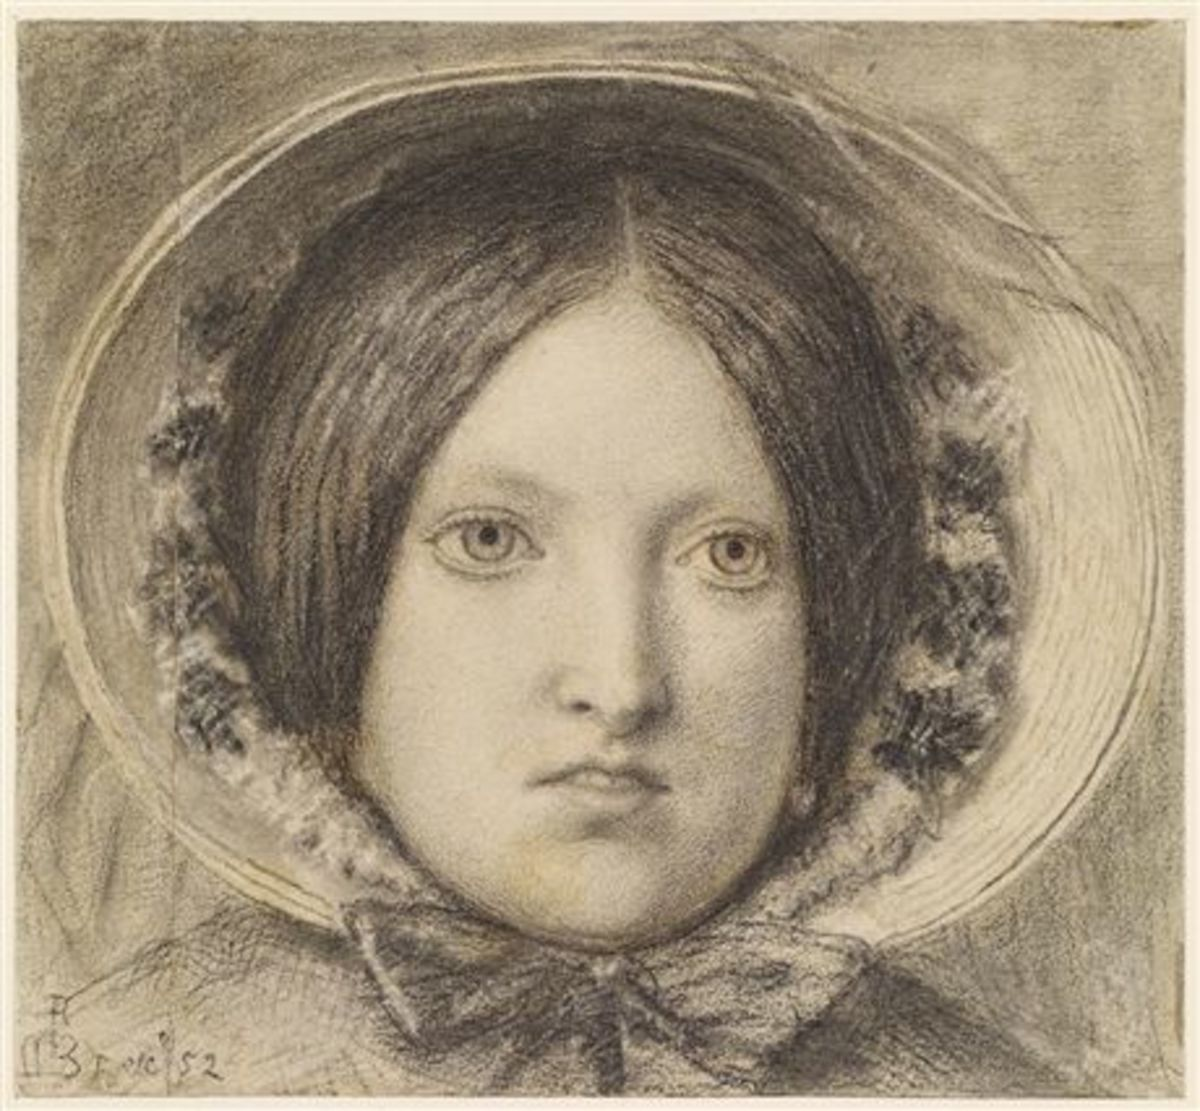 Ford Madox Brown's wife Emma Hill, served as the model for his painting 'The Last of England'